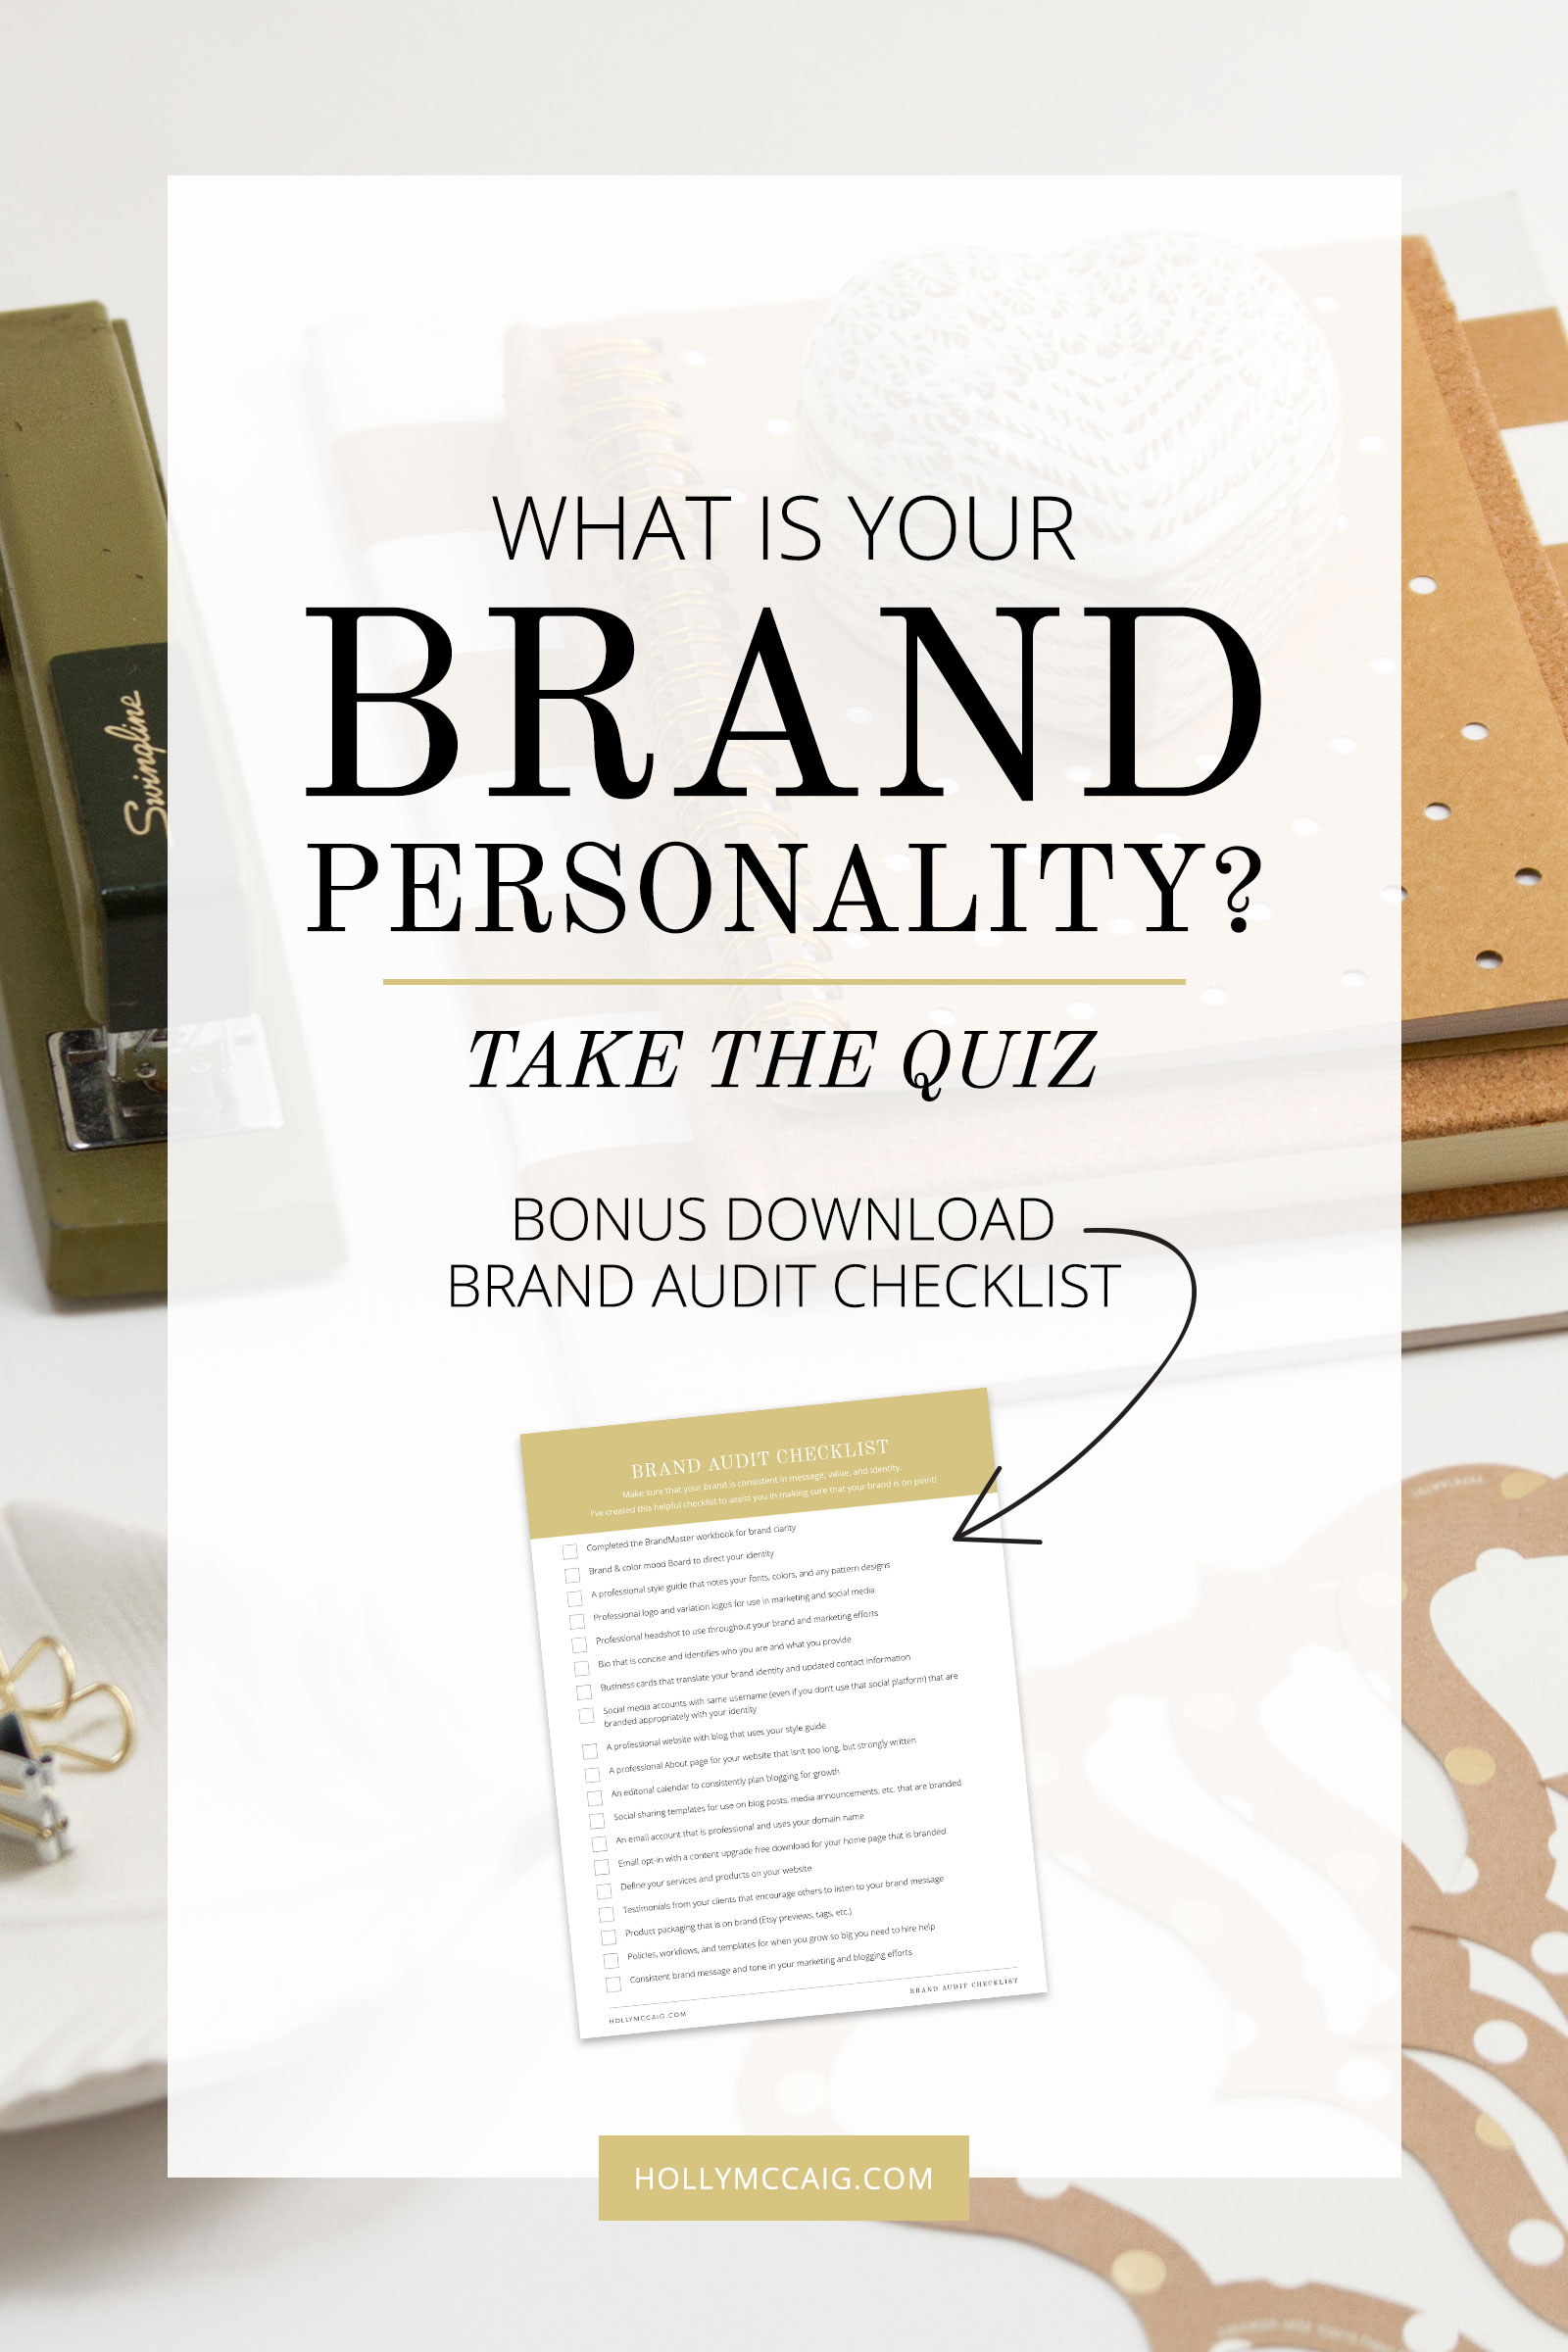 your brand personality what is yours holly mccaig your brand personality is something that your audience can relate to and is consistent your